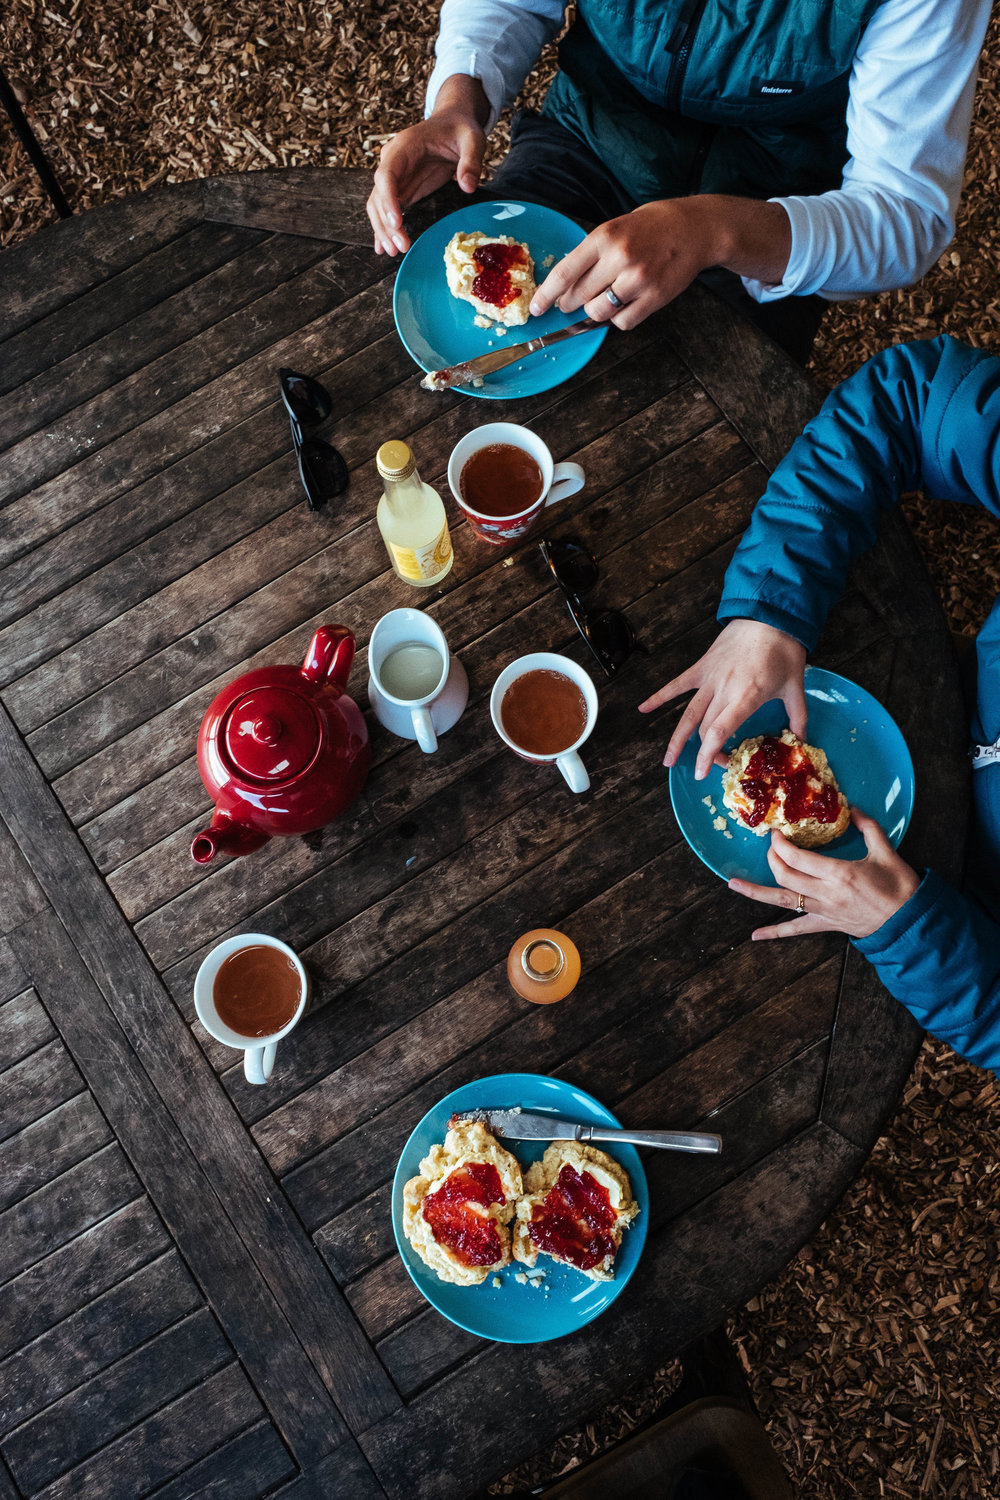 Find out what foods pair perfectly with your favorite cup of coffee!